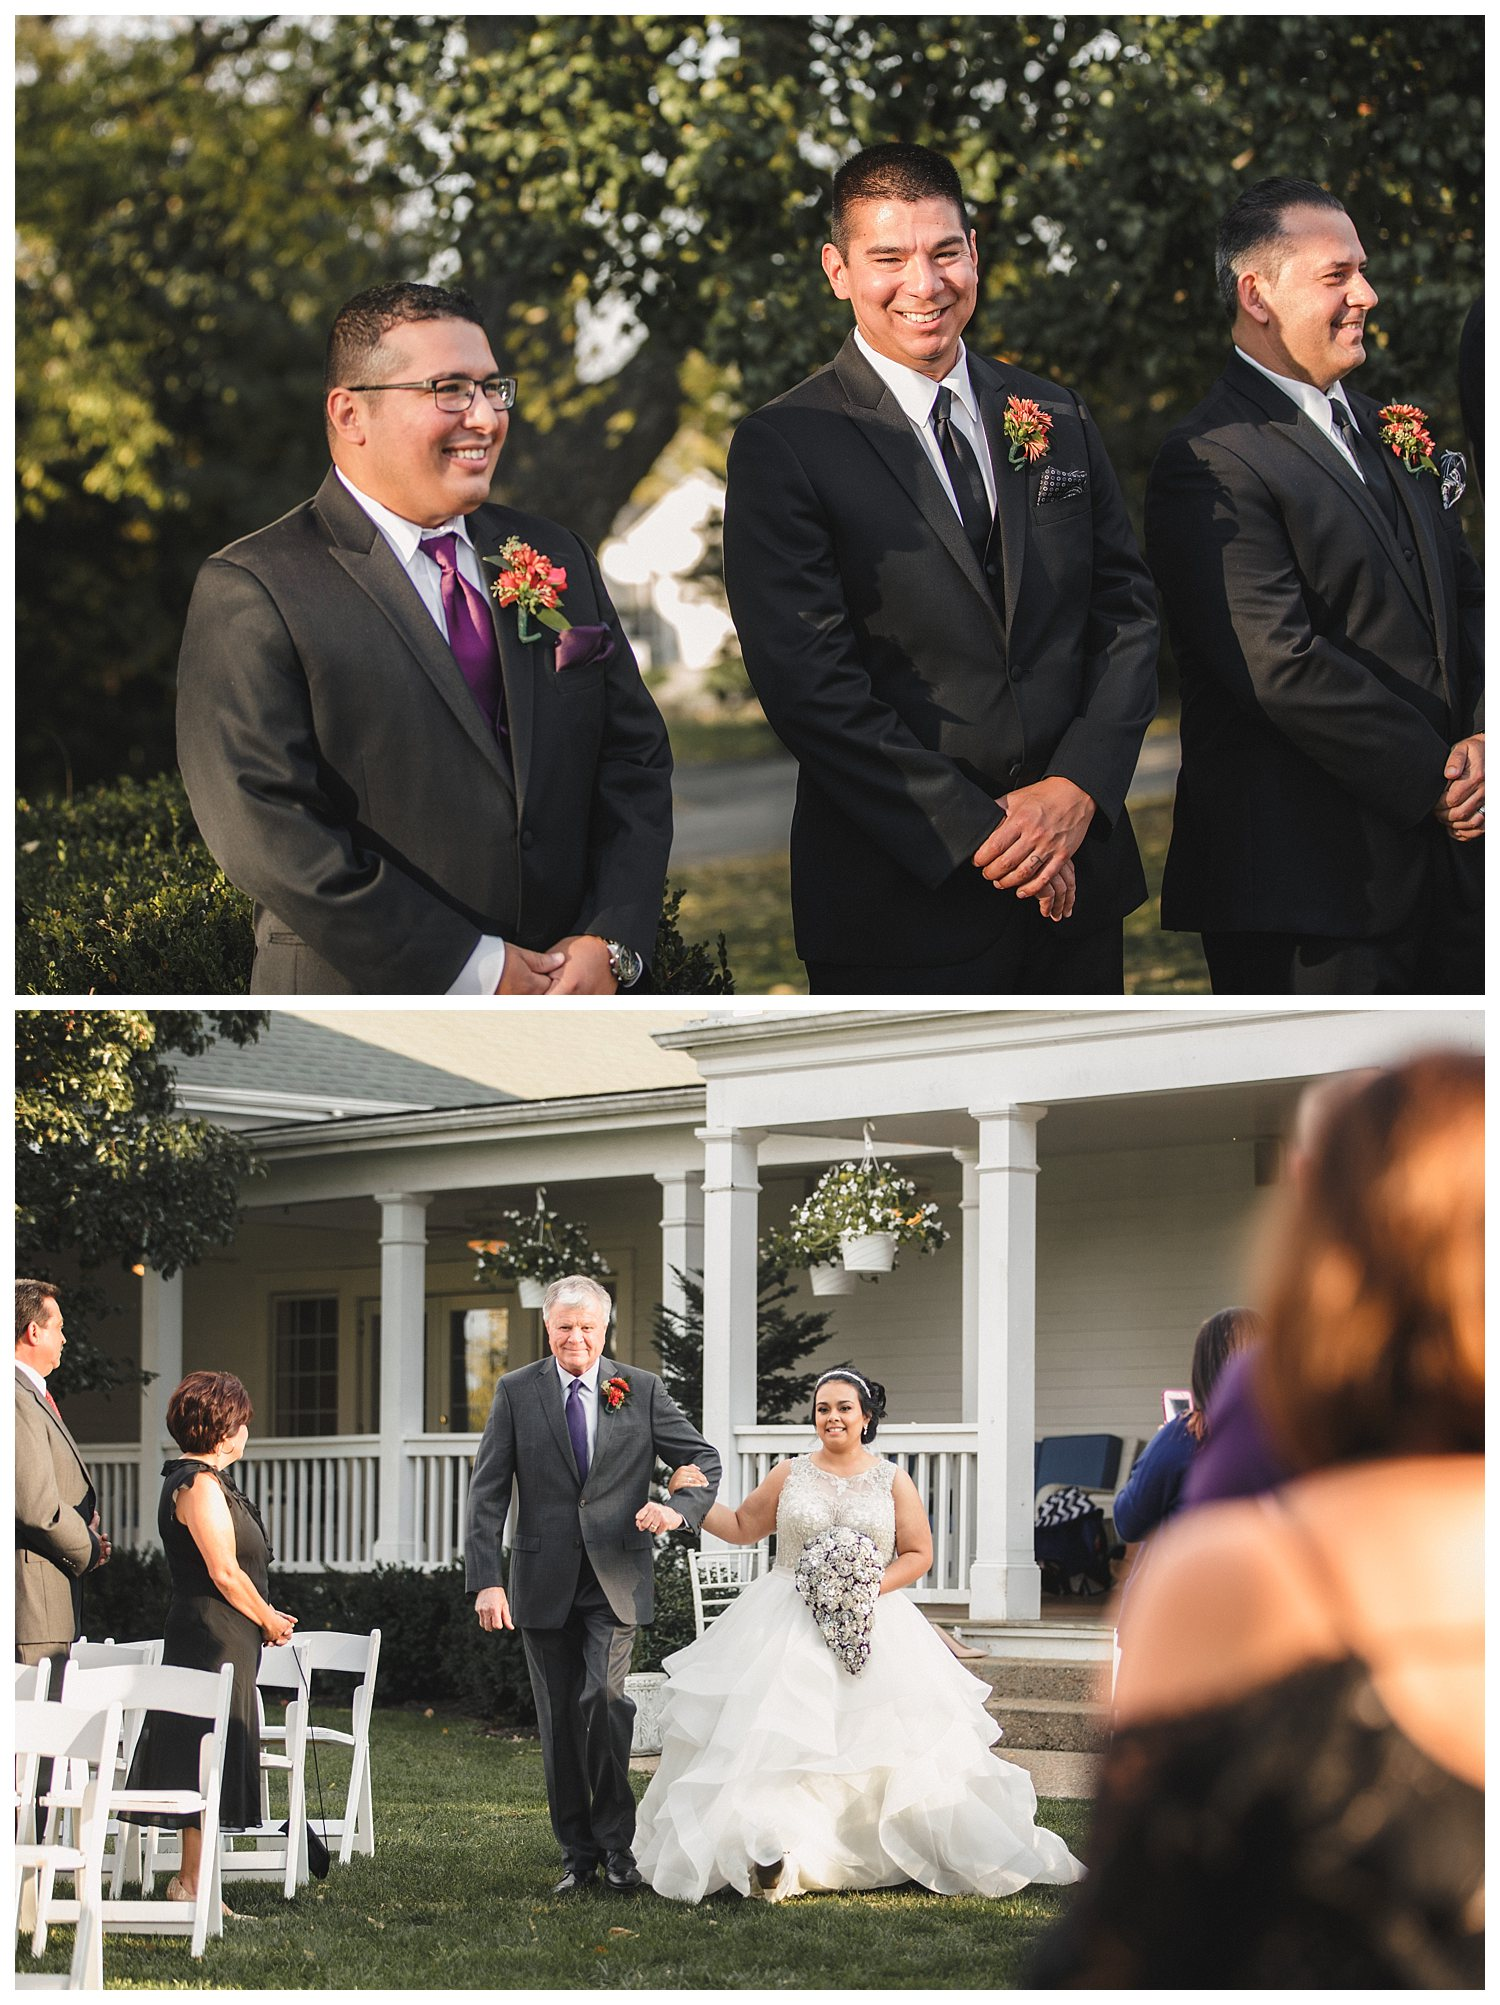 Kelsey_Diane_Photography_Hawthorne_House_Parkville_Kansas_City_Wedding_Veronica_Pat_0042.jpg